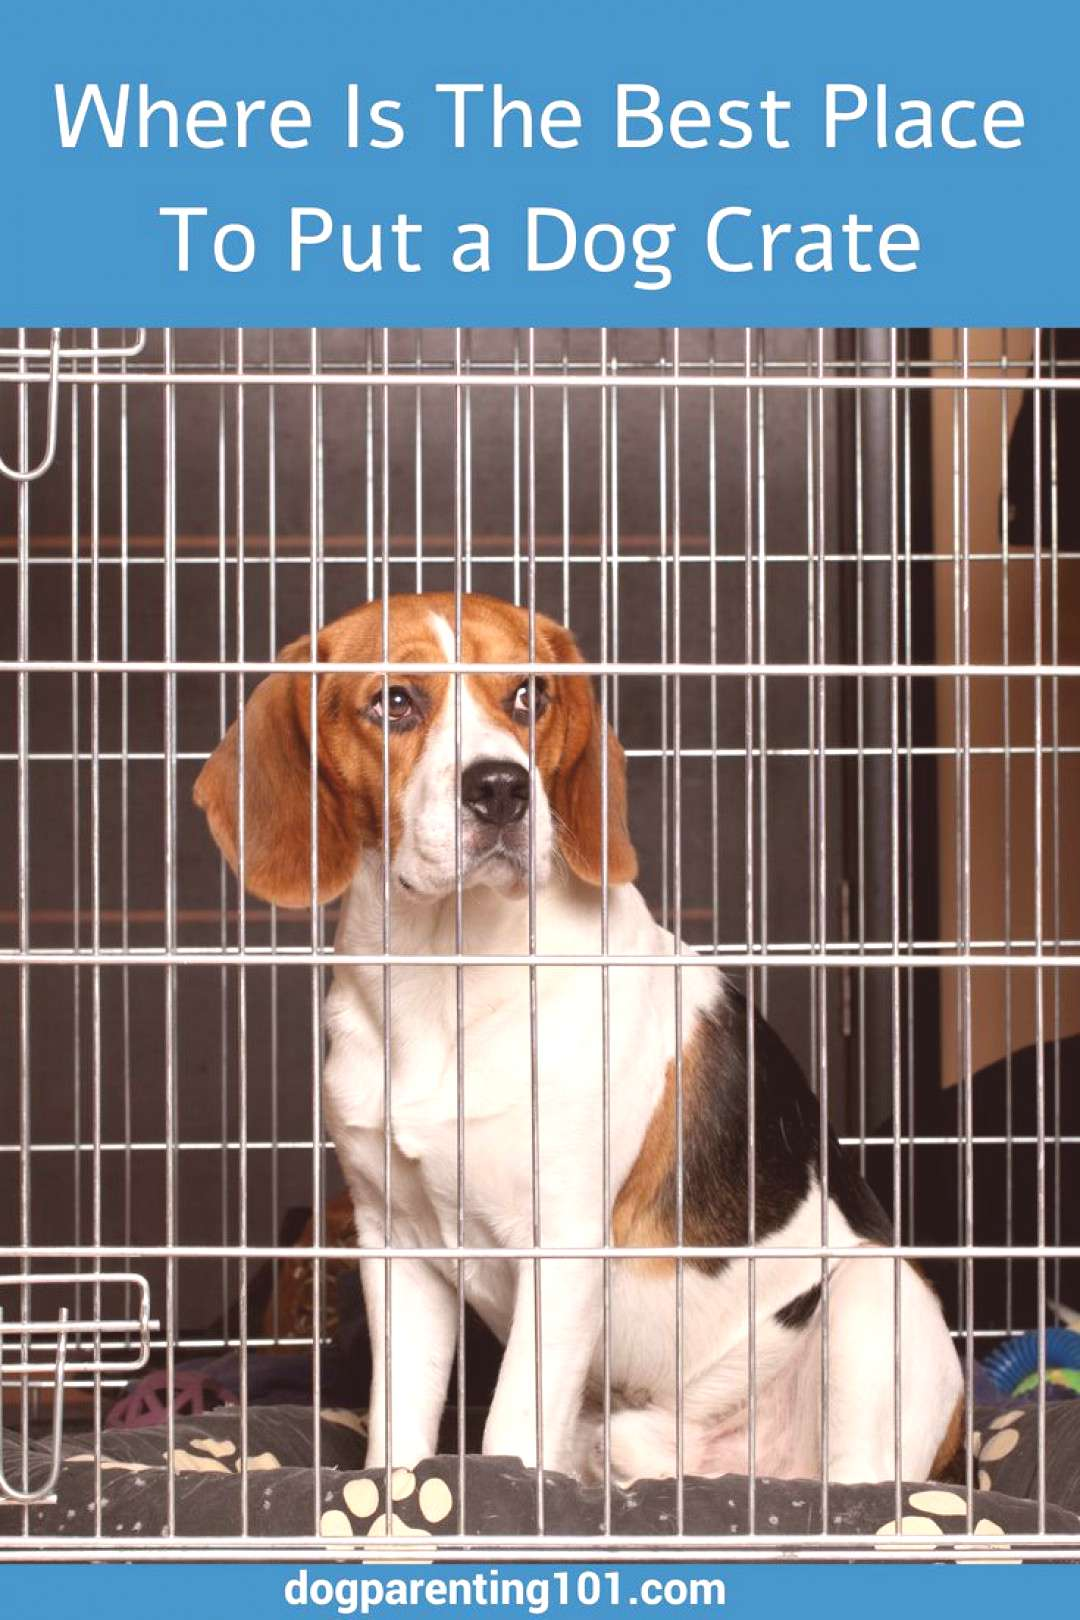 Where Is The Best Place To Put a Dog Crate | Dog Parenting 101